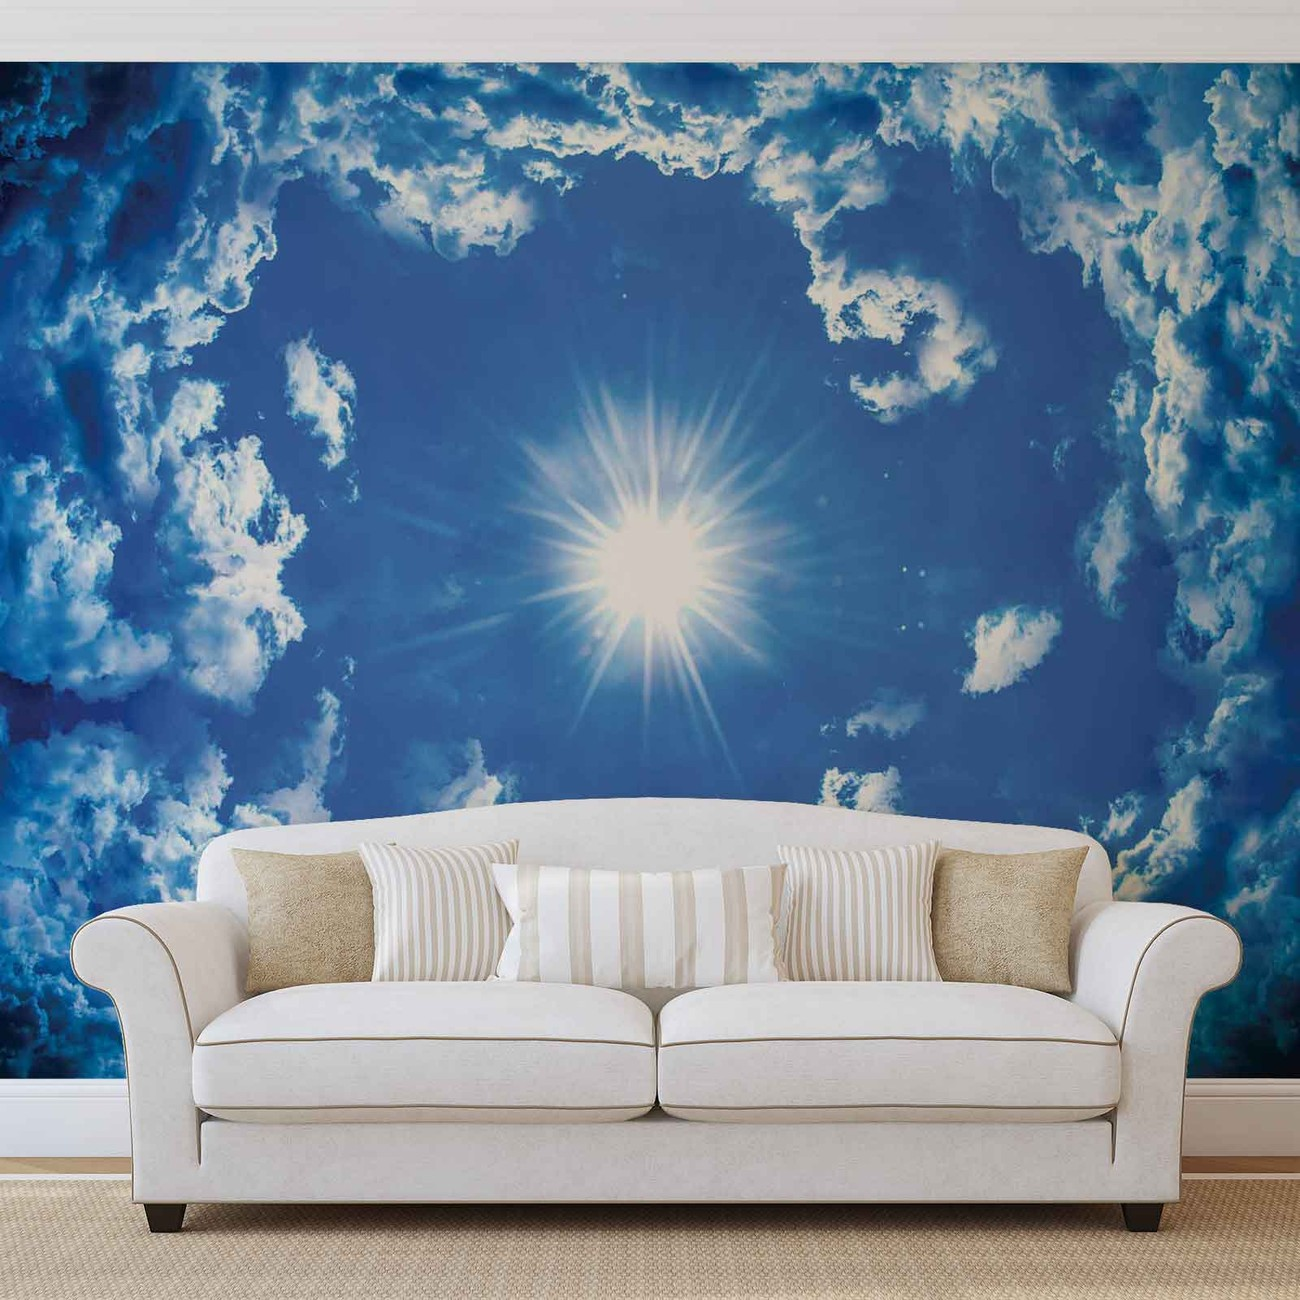 sky clouds sun nature wall paper mural buy at europosters. Black Bedroom Furniture Sets. Home Design Ideas